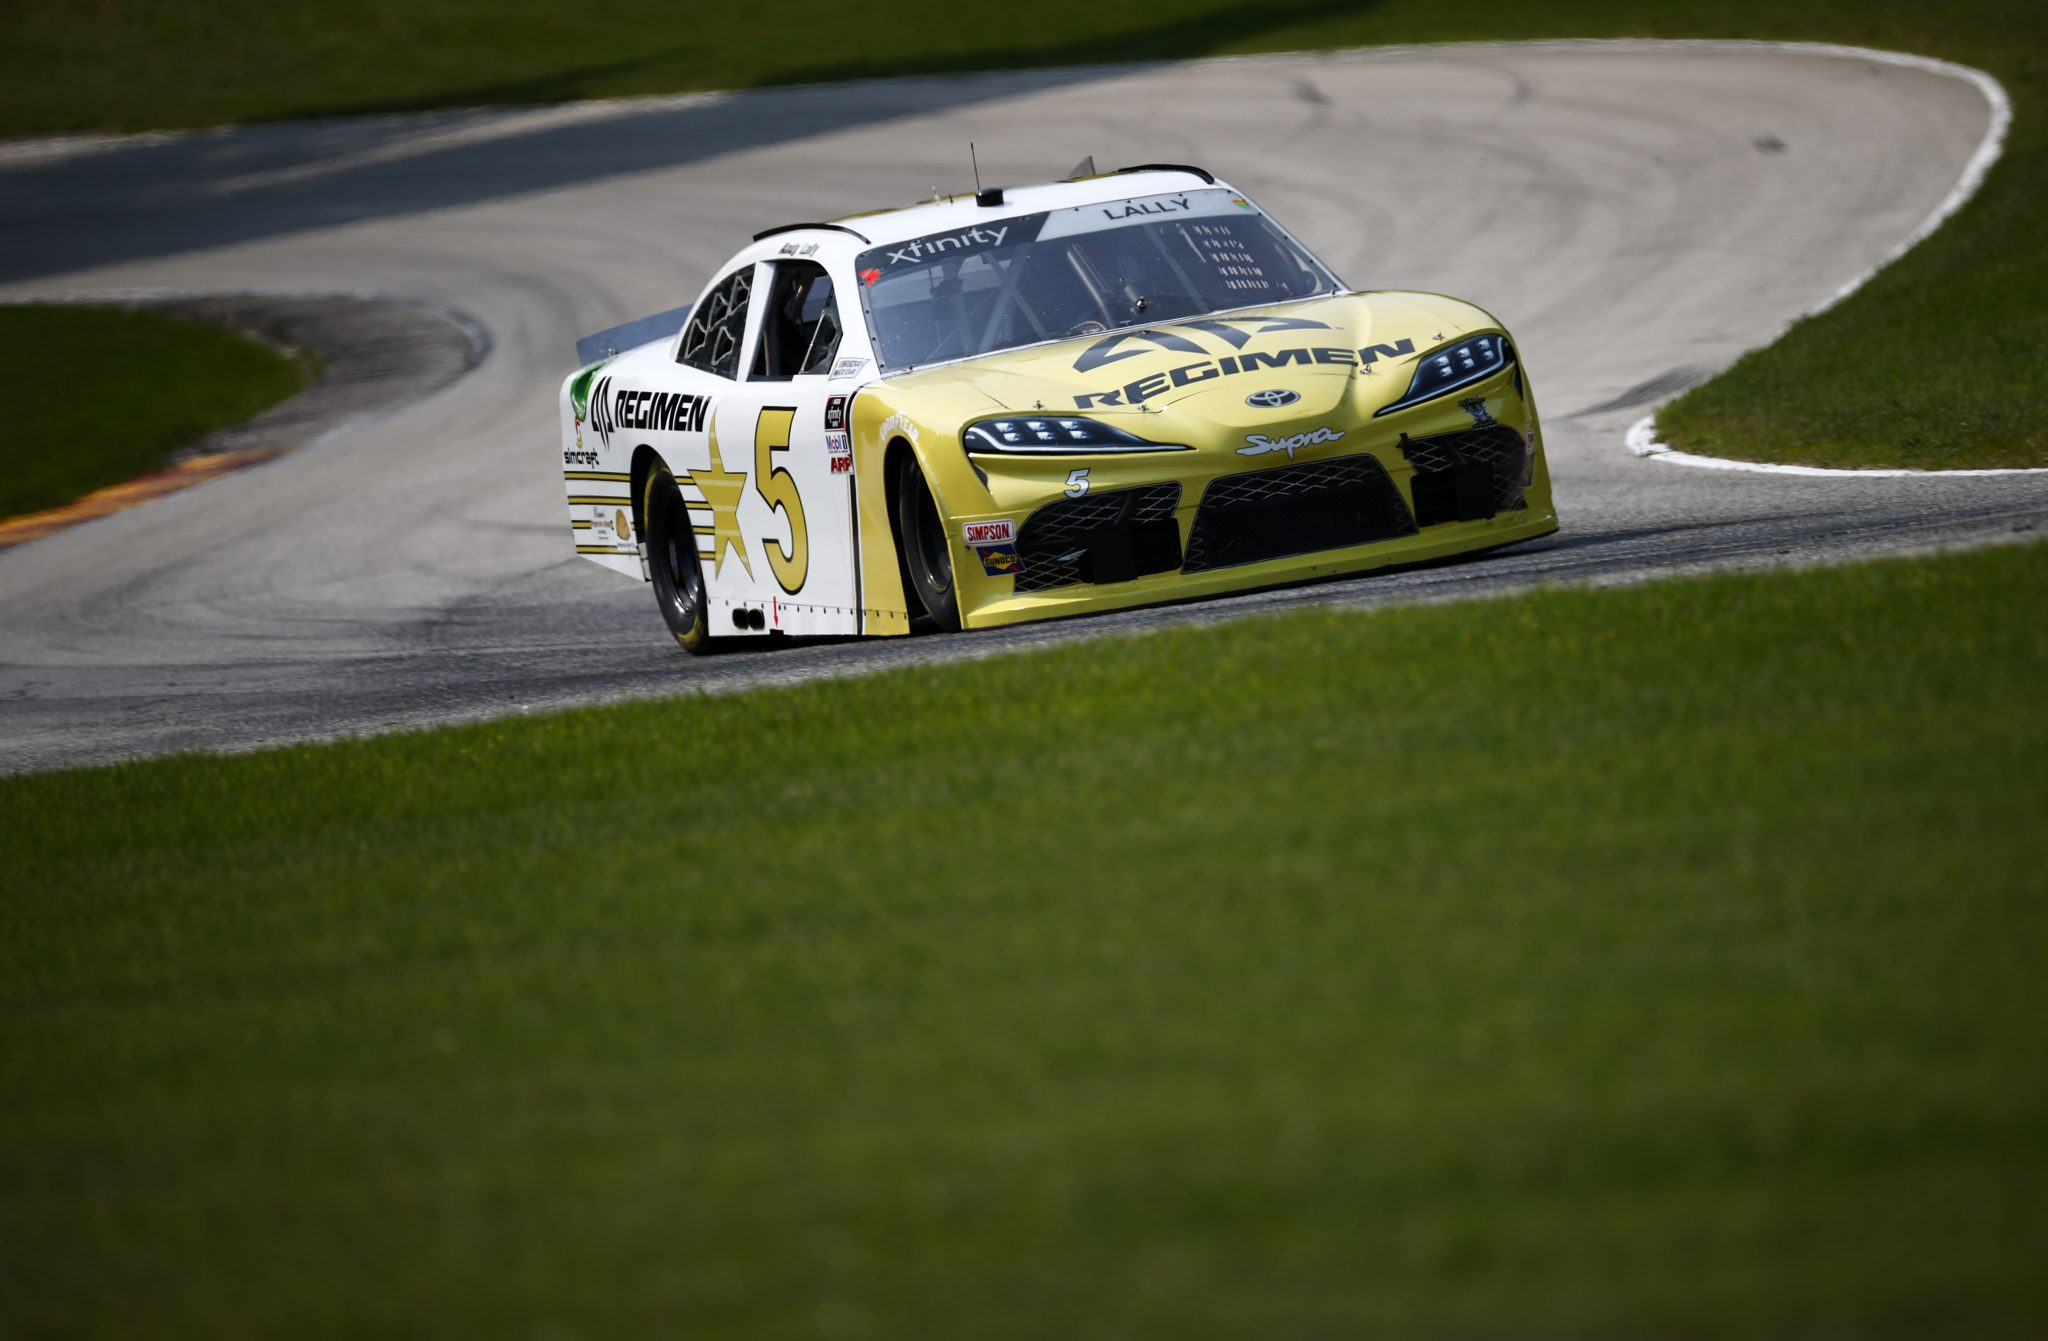 ELKHART LAKE, WISCONSIN - JULY 02: Andy Lally, driver of the #5 Alpha Prime Regimen Toyota, drives during practice for the NASCAR Xfinity Series Henry 180 at Road America on July 02, 2021 in Elkhart Lake, Wisconsin. (Photo by Jared C. Tilton/Getty Images) | Getty Images